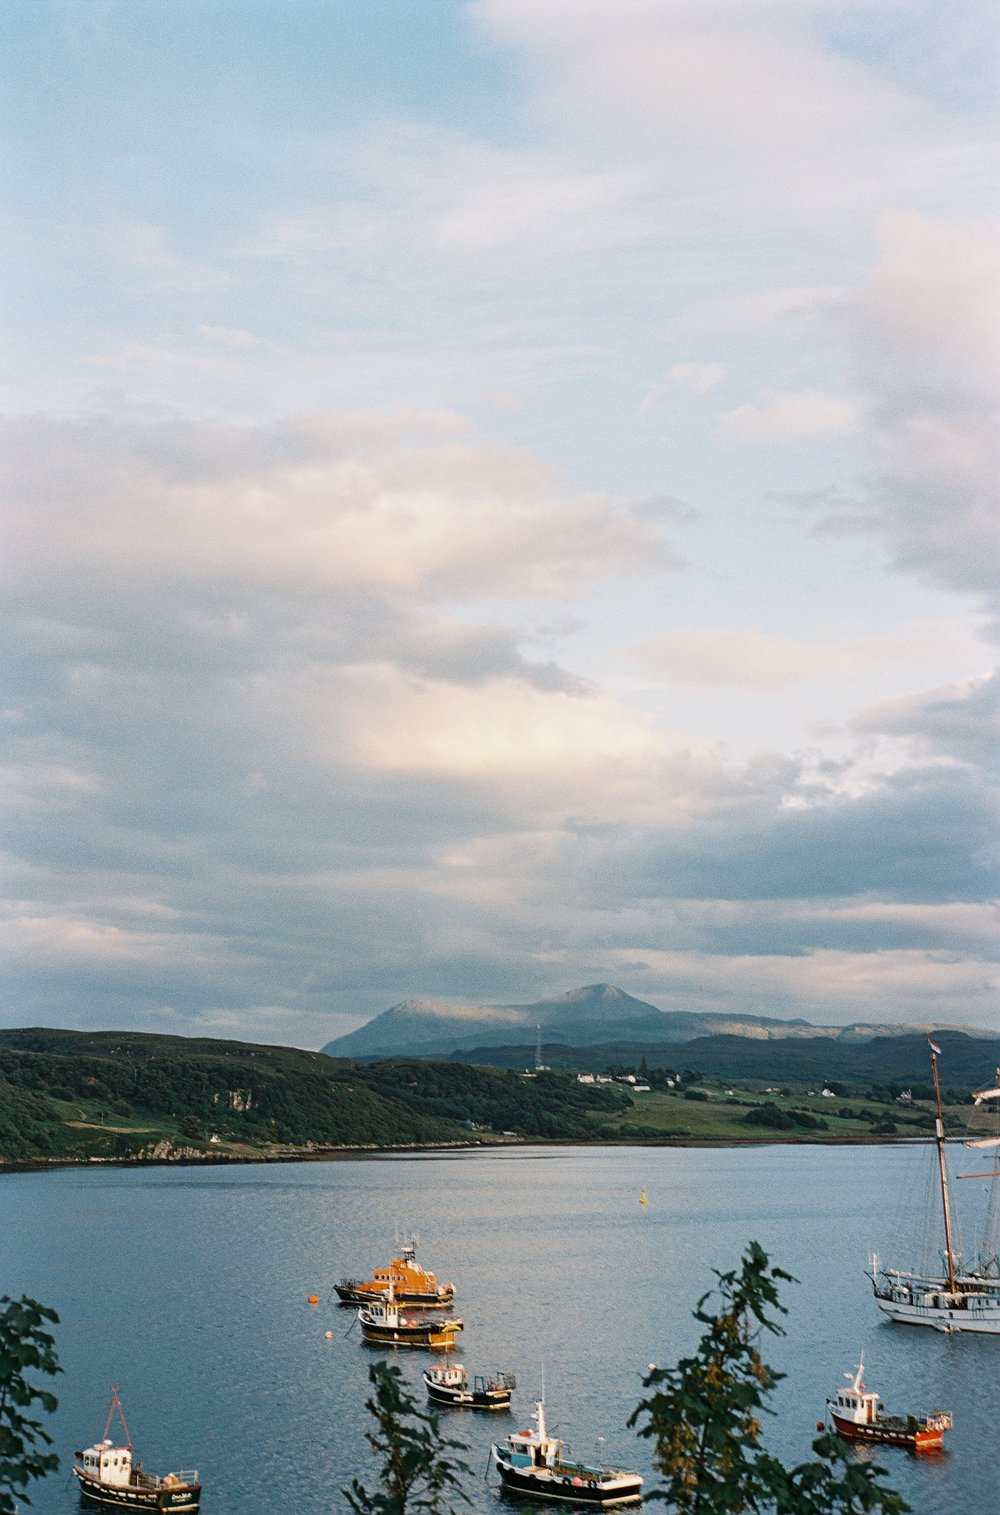 one of the most carelessly stunning places I've ever been - On the day we arrived in Portree, we arrived right as the sun began to set, the surrounding hills and tiny cars silhouetted against a quickly purpling evening sky.